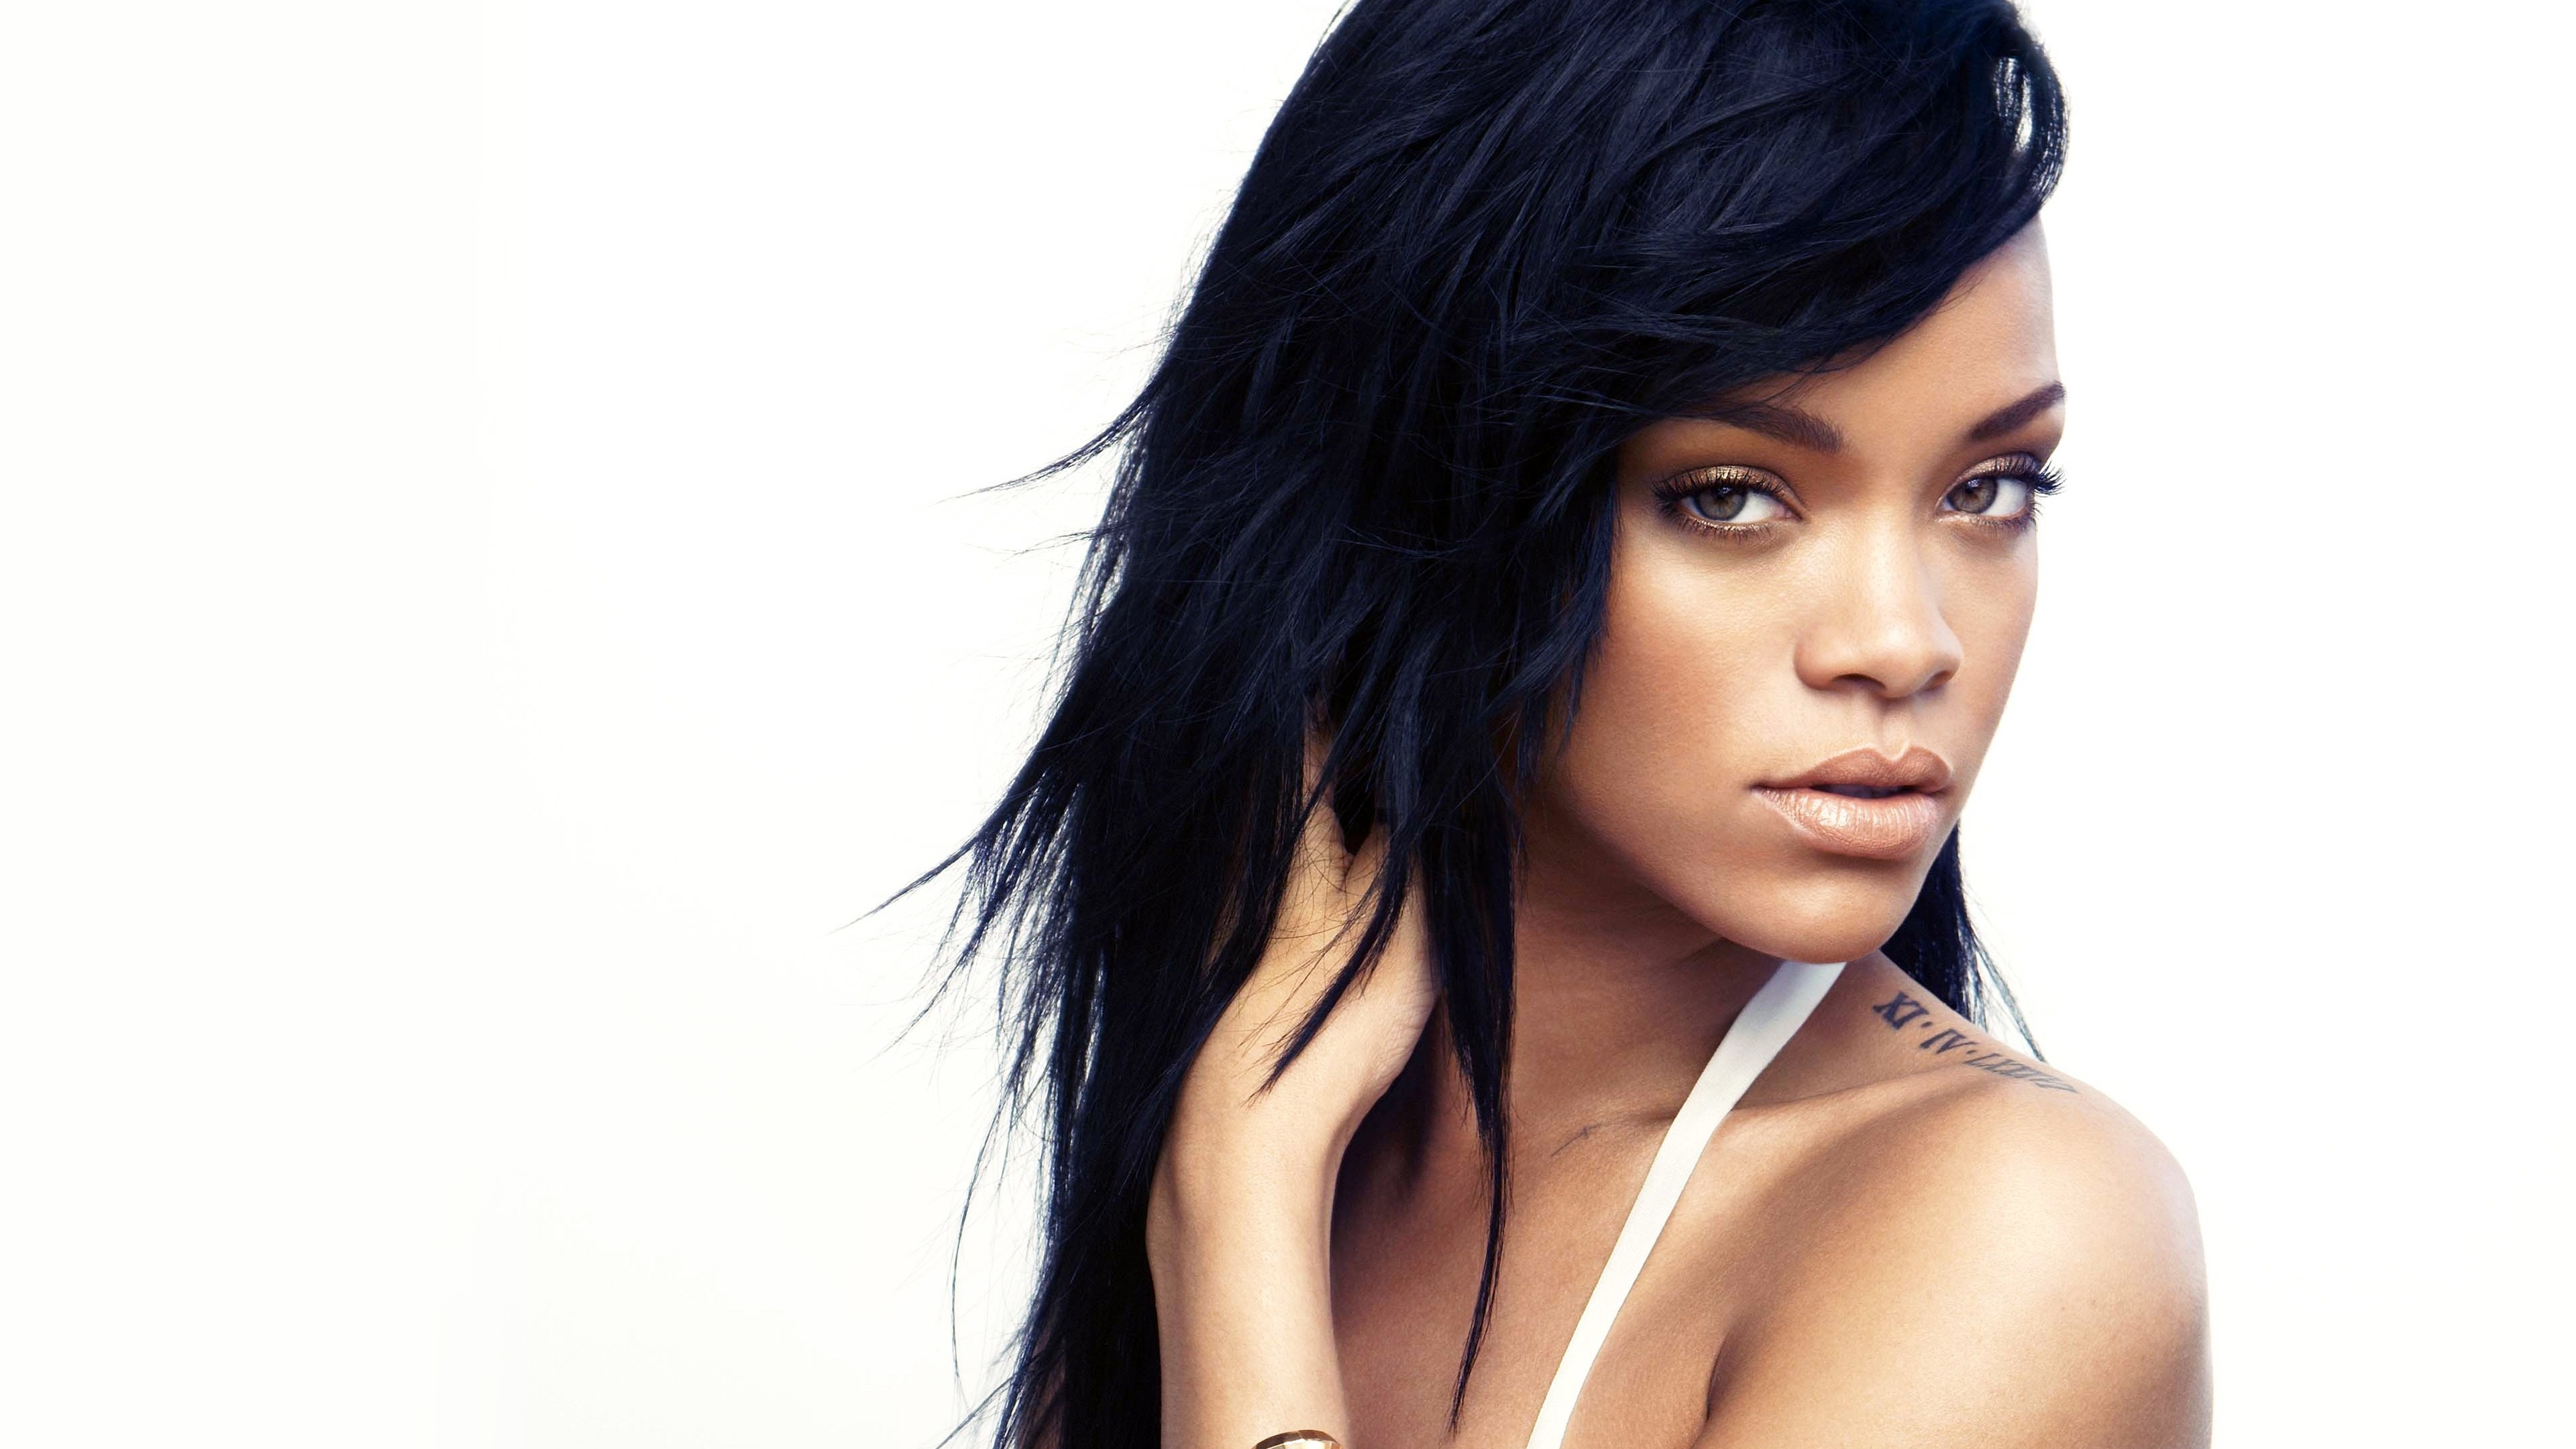 rihanna celebrity widescreen wallpaper 63359